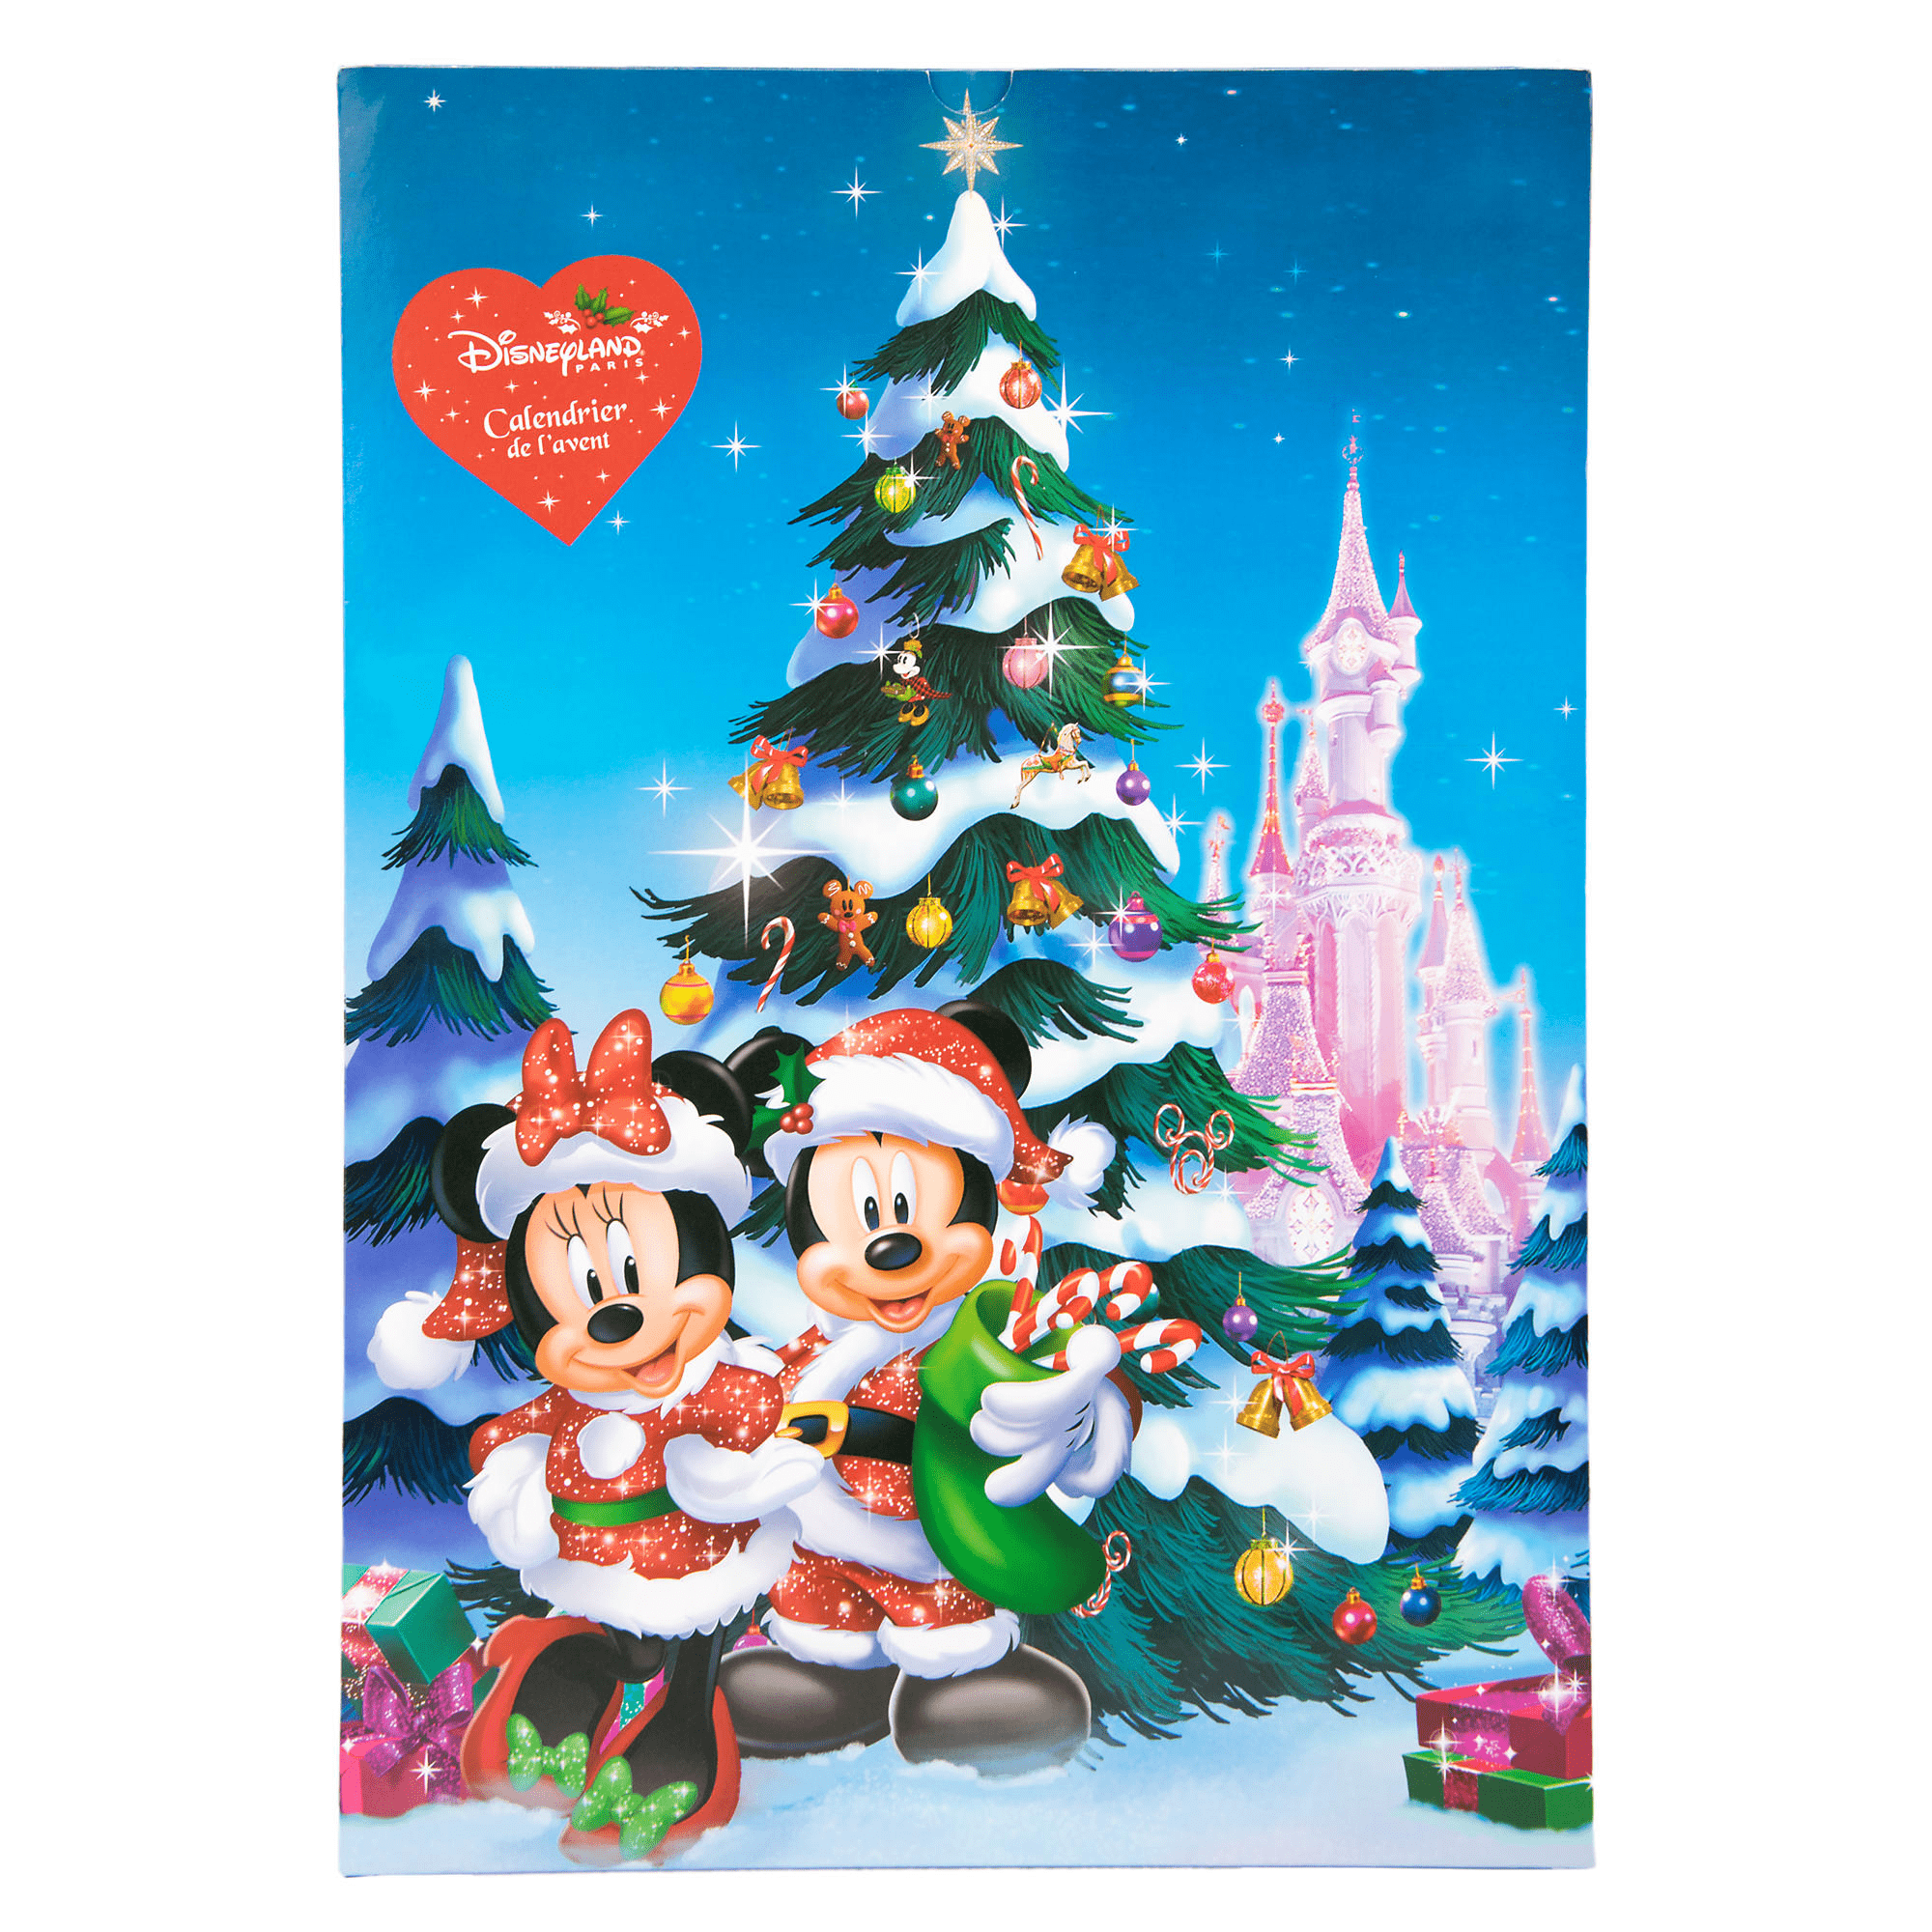 2018 Disney Pin Advent Calendar Available for Pre-Order Now!